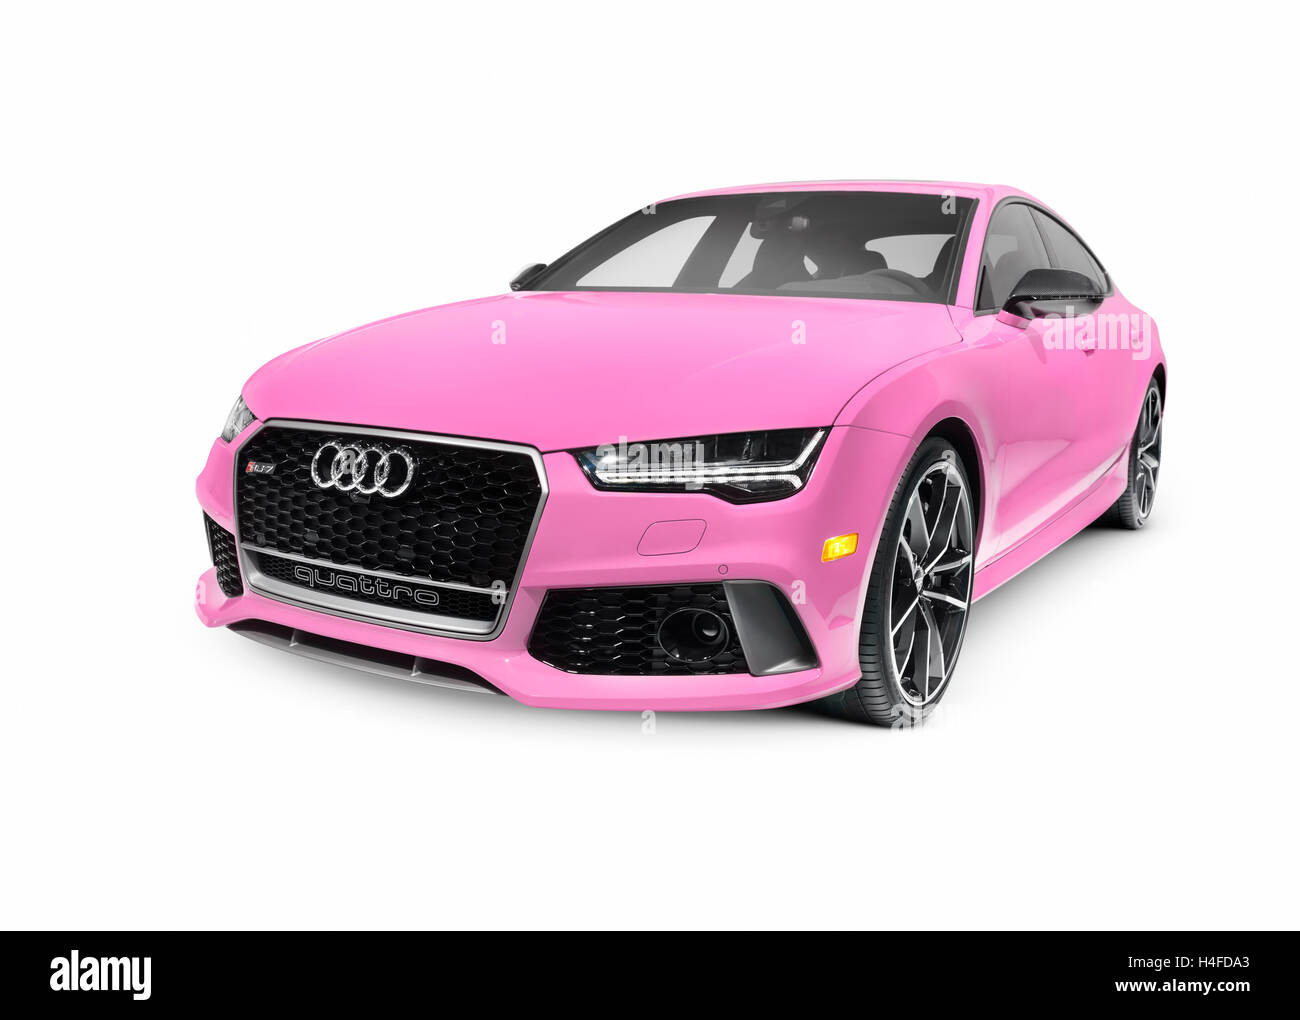 Bright pink 2016 Audi RS 7 Prestige Quattro Sedan luxury car isolated on white background with clipping path Stock Photo